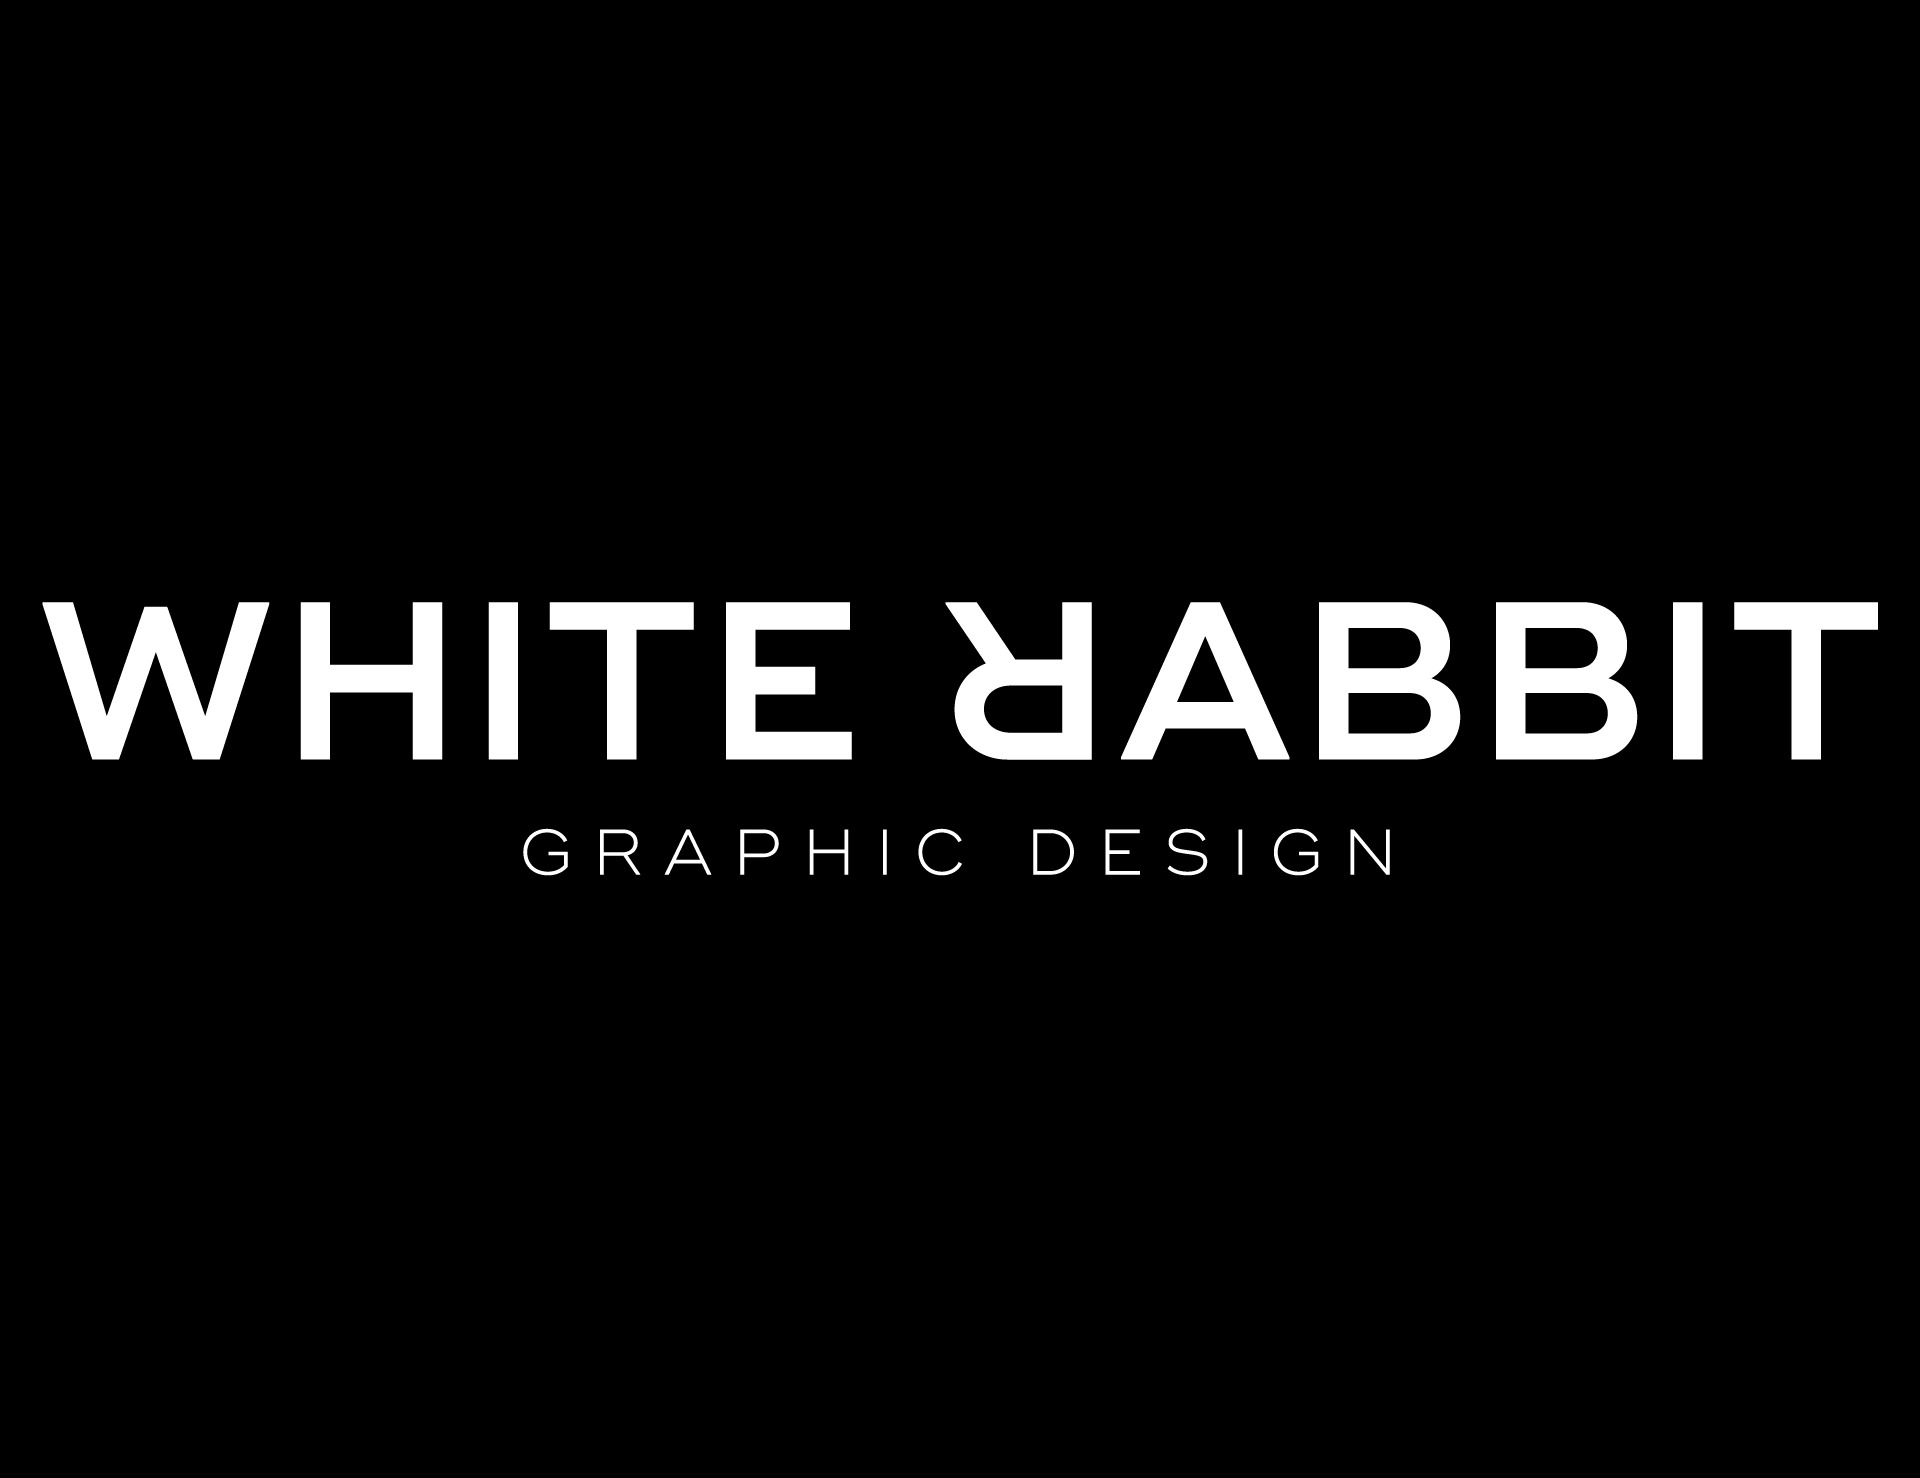 White Rabbit Graphic Design